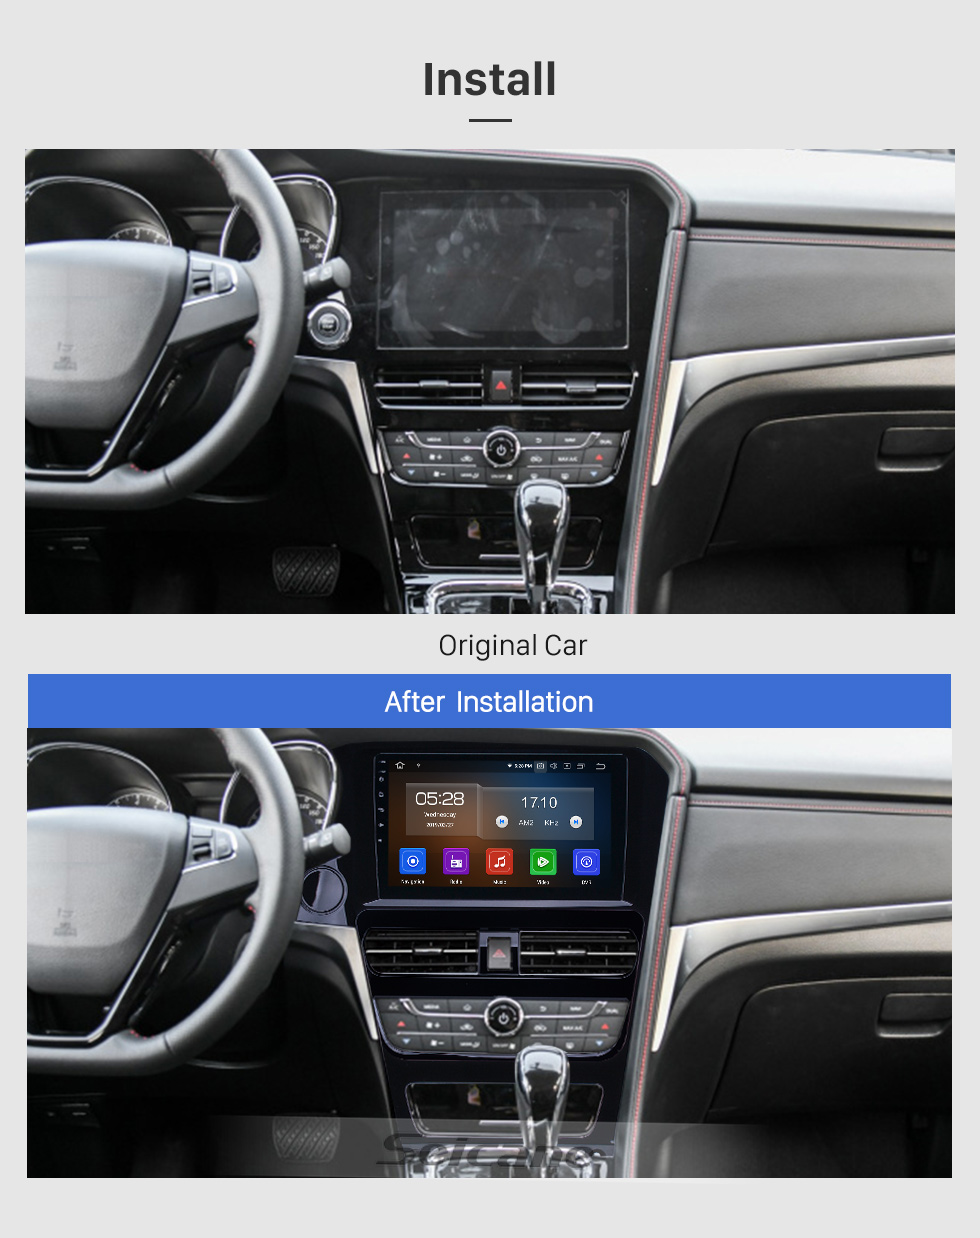 Seicane 2018-2019 Venucia T70 Hohe Version Android 9.0 10.1 Zoll GPS Navigationsradio Bluetooth HD Touchscreen Carplay Unterstützung DVR SWC